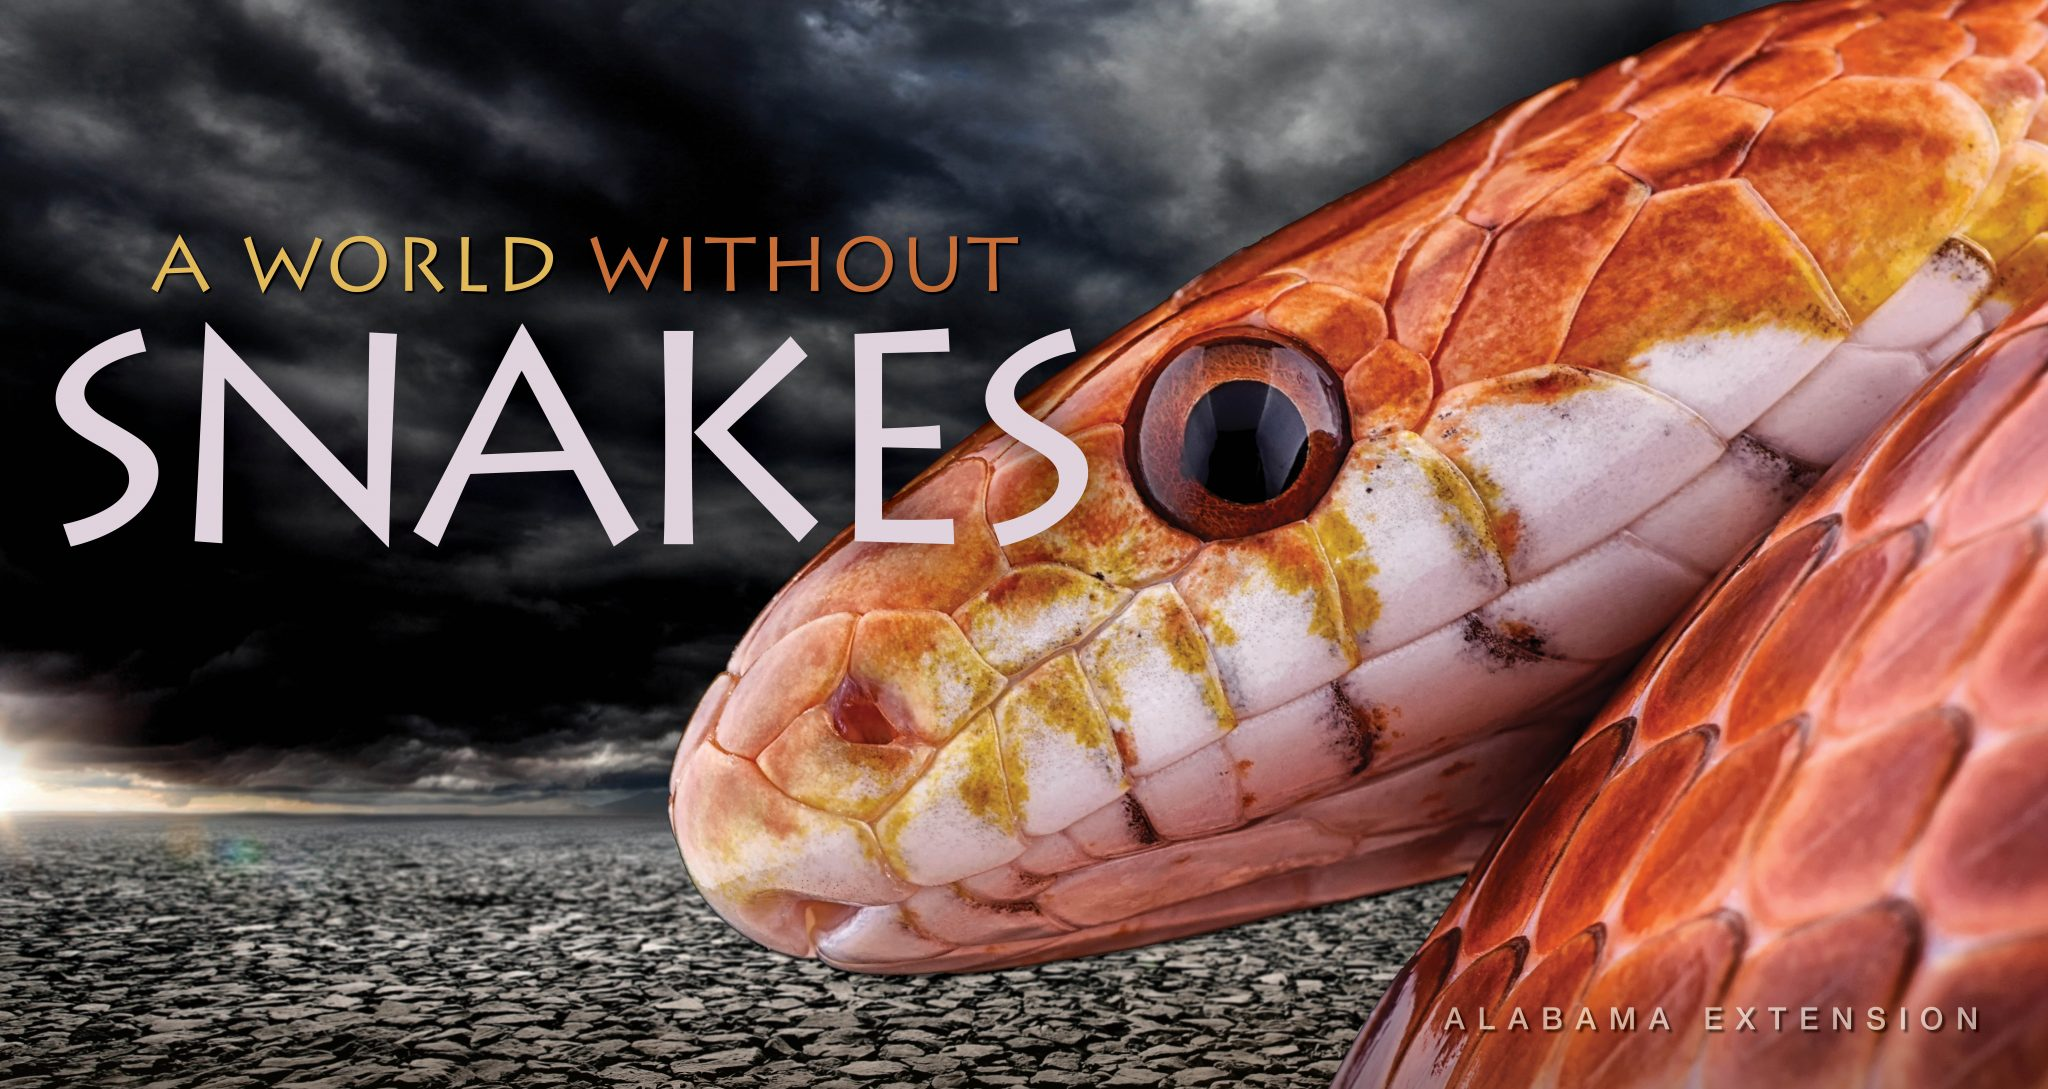 A World Without Snakes